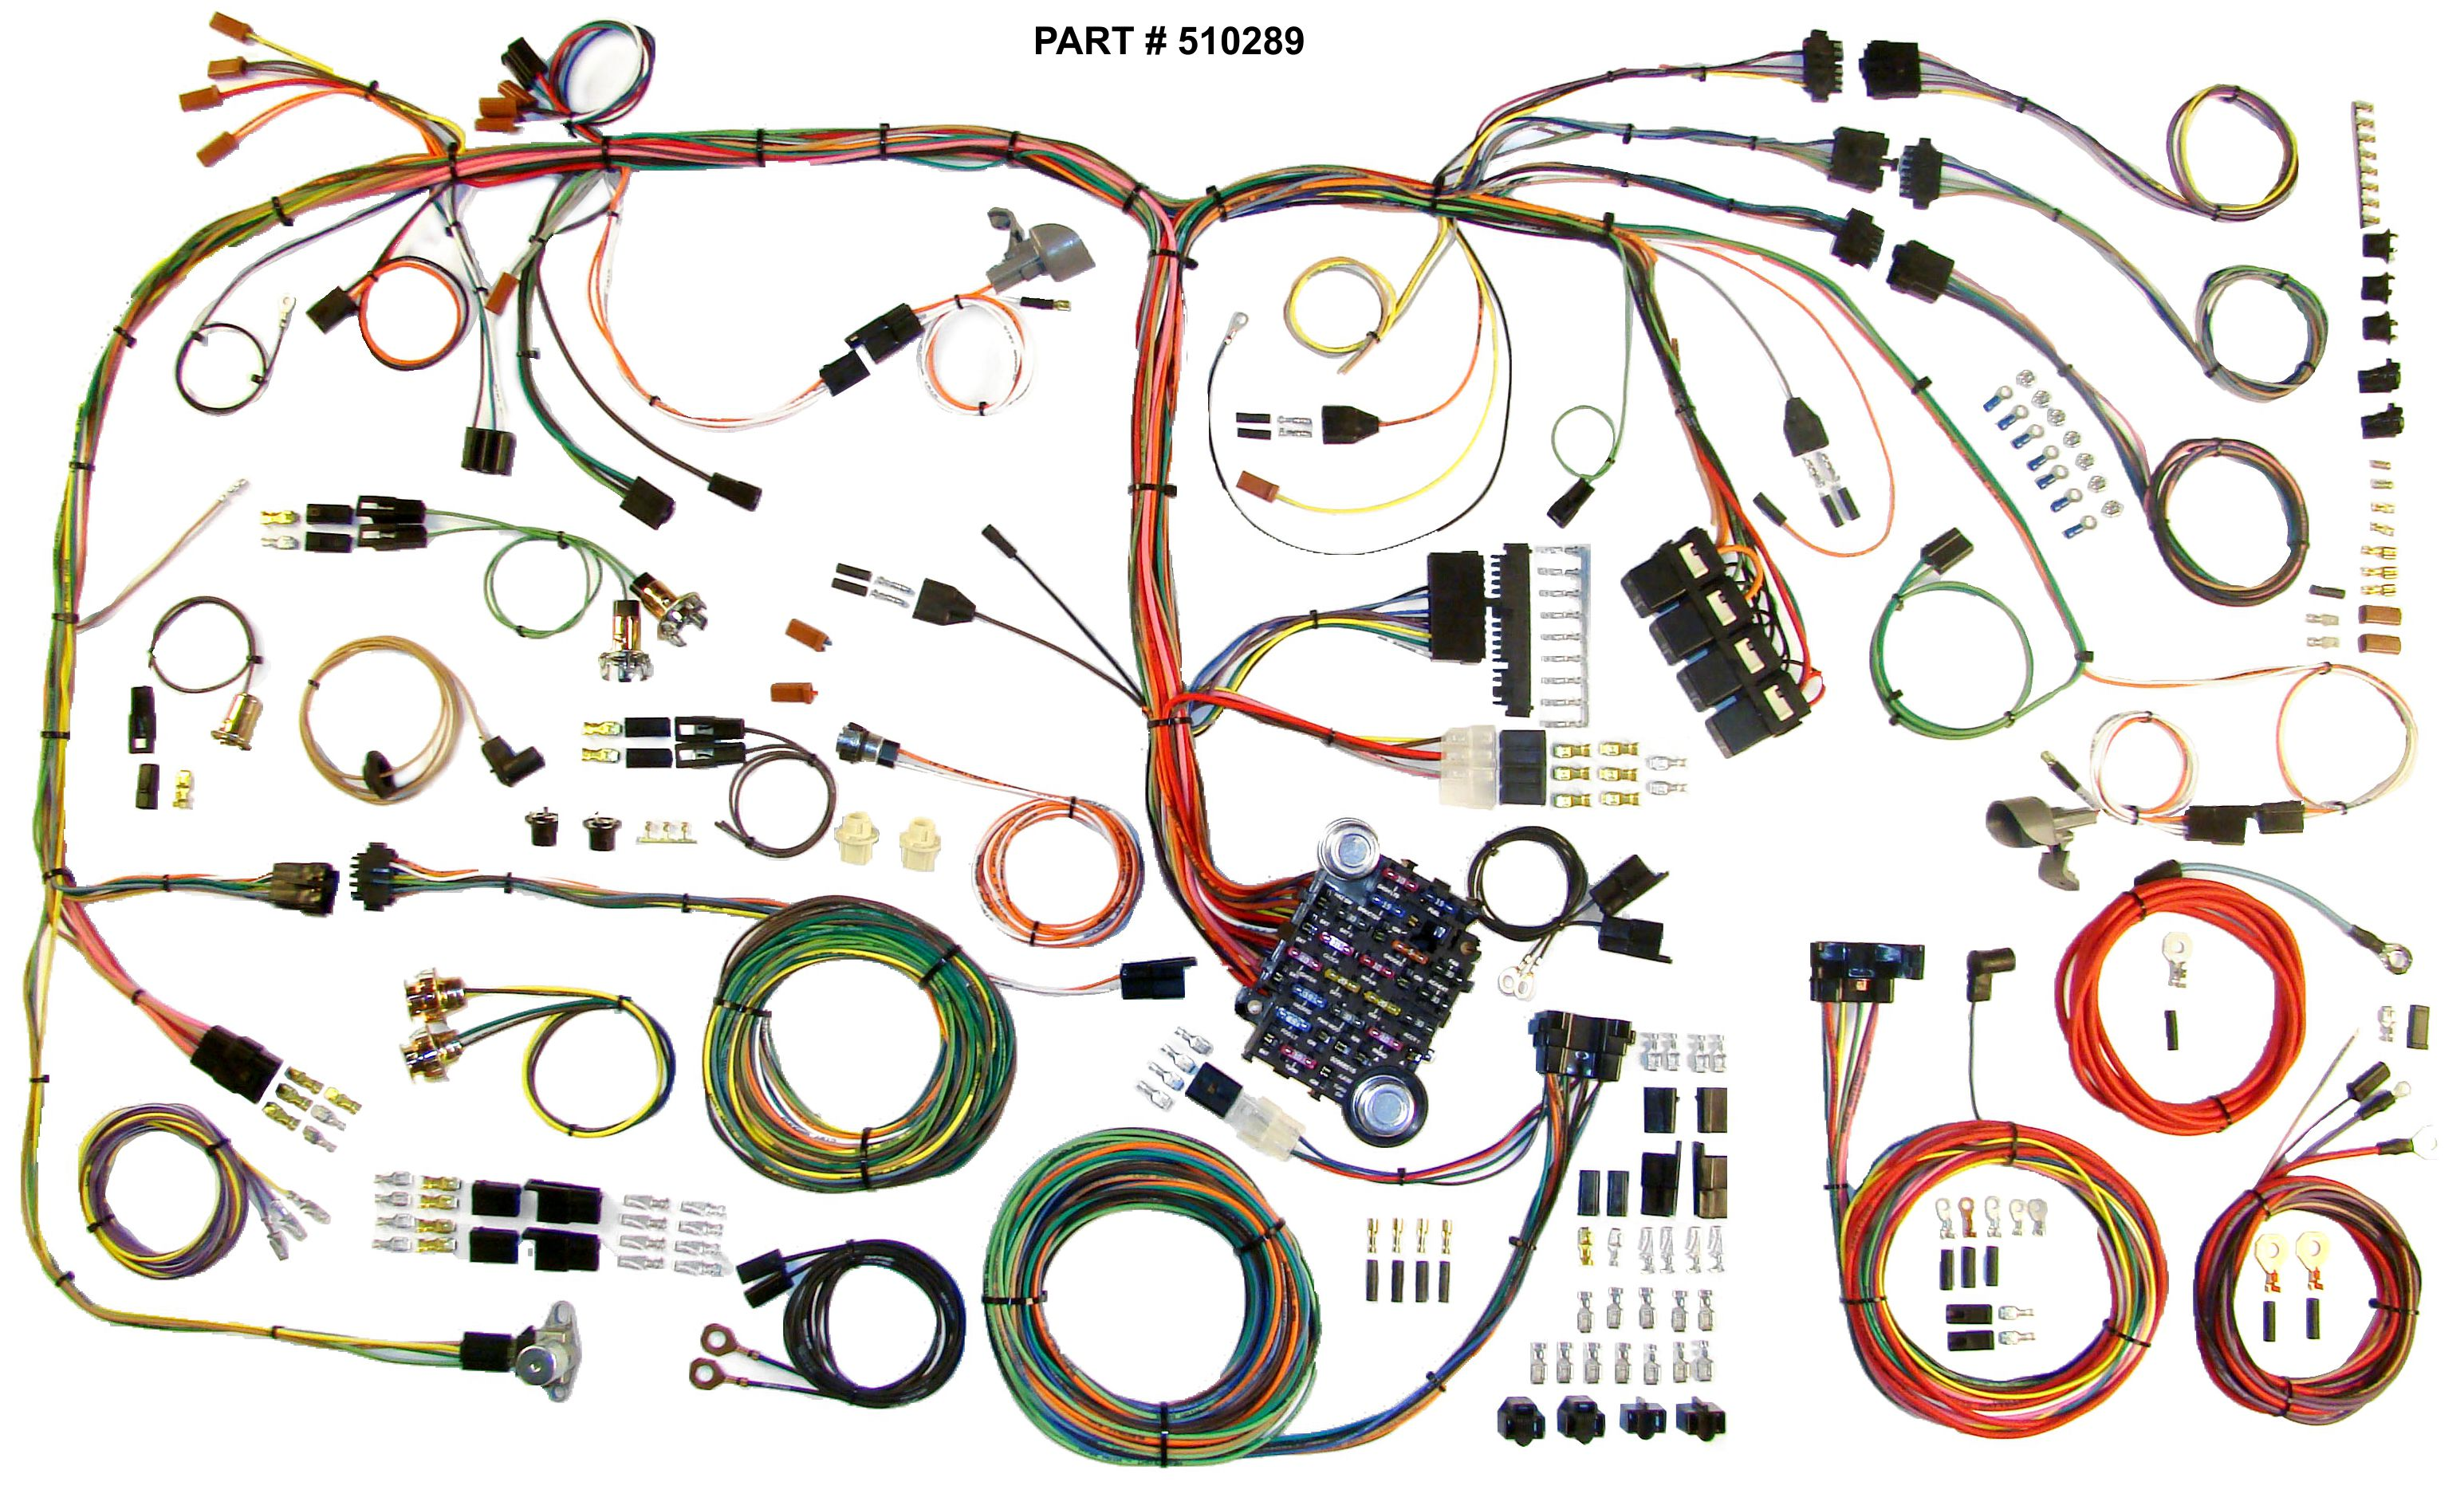 1970 1974 Plymouth Barracuda & Dodge Challenger Restomod Wiring System 1971 Plymouth  Barracuda 1972 Plymouth Barracuda Wiring Diagram